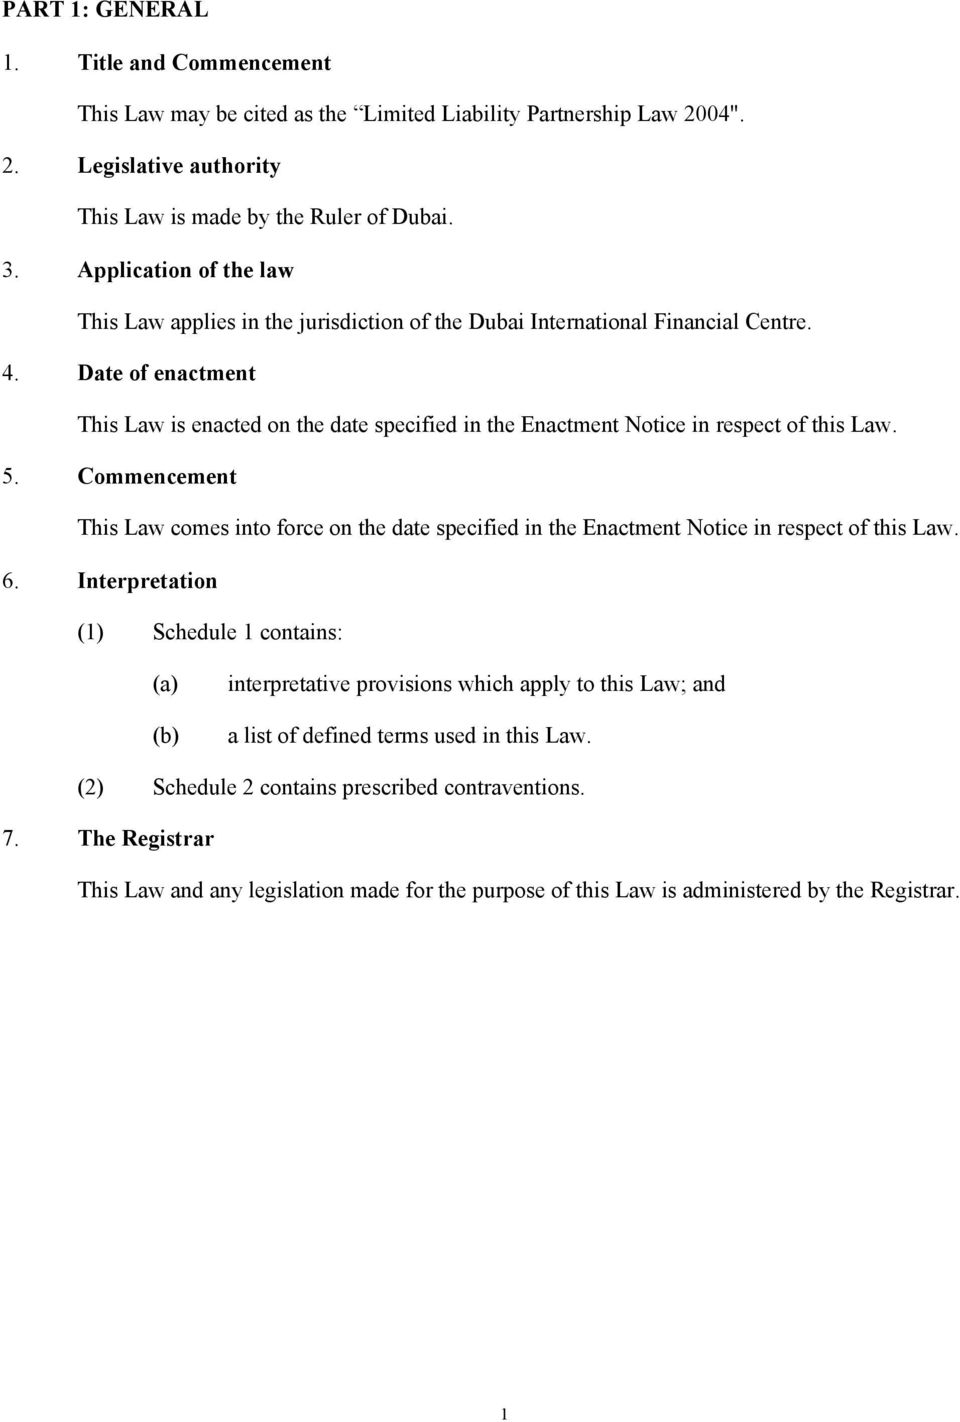 Date of enactment This Law is enacted on the date specified in the Enactment Notice in respect of this Law. 5.